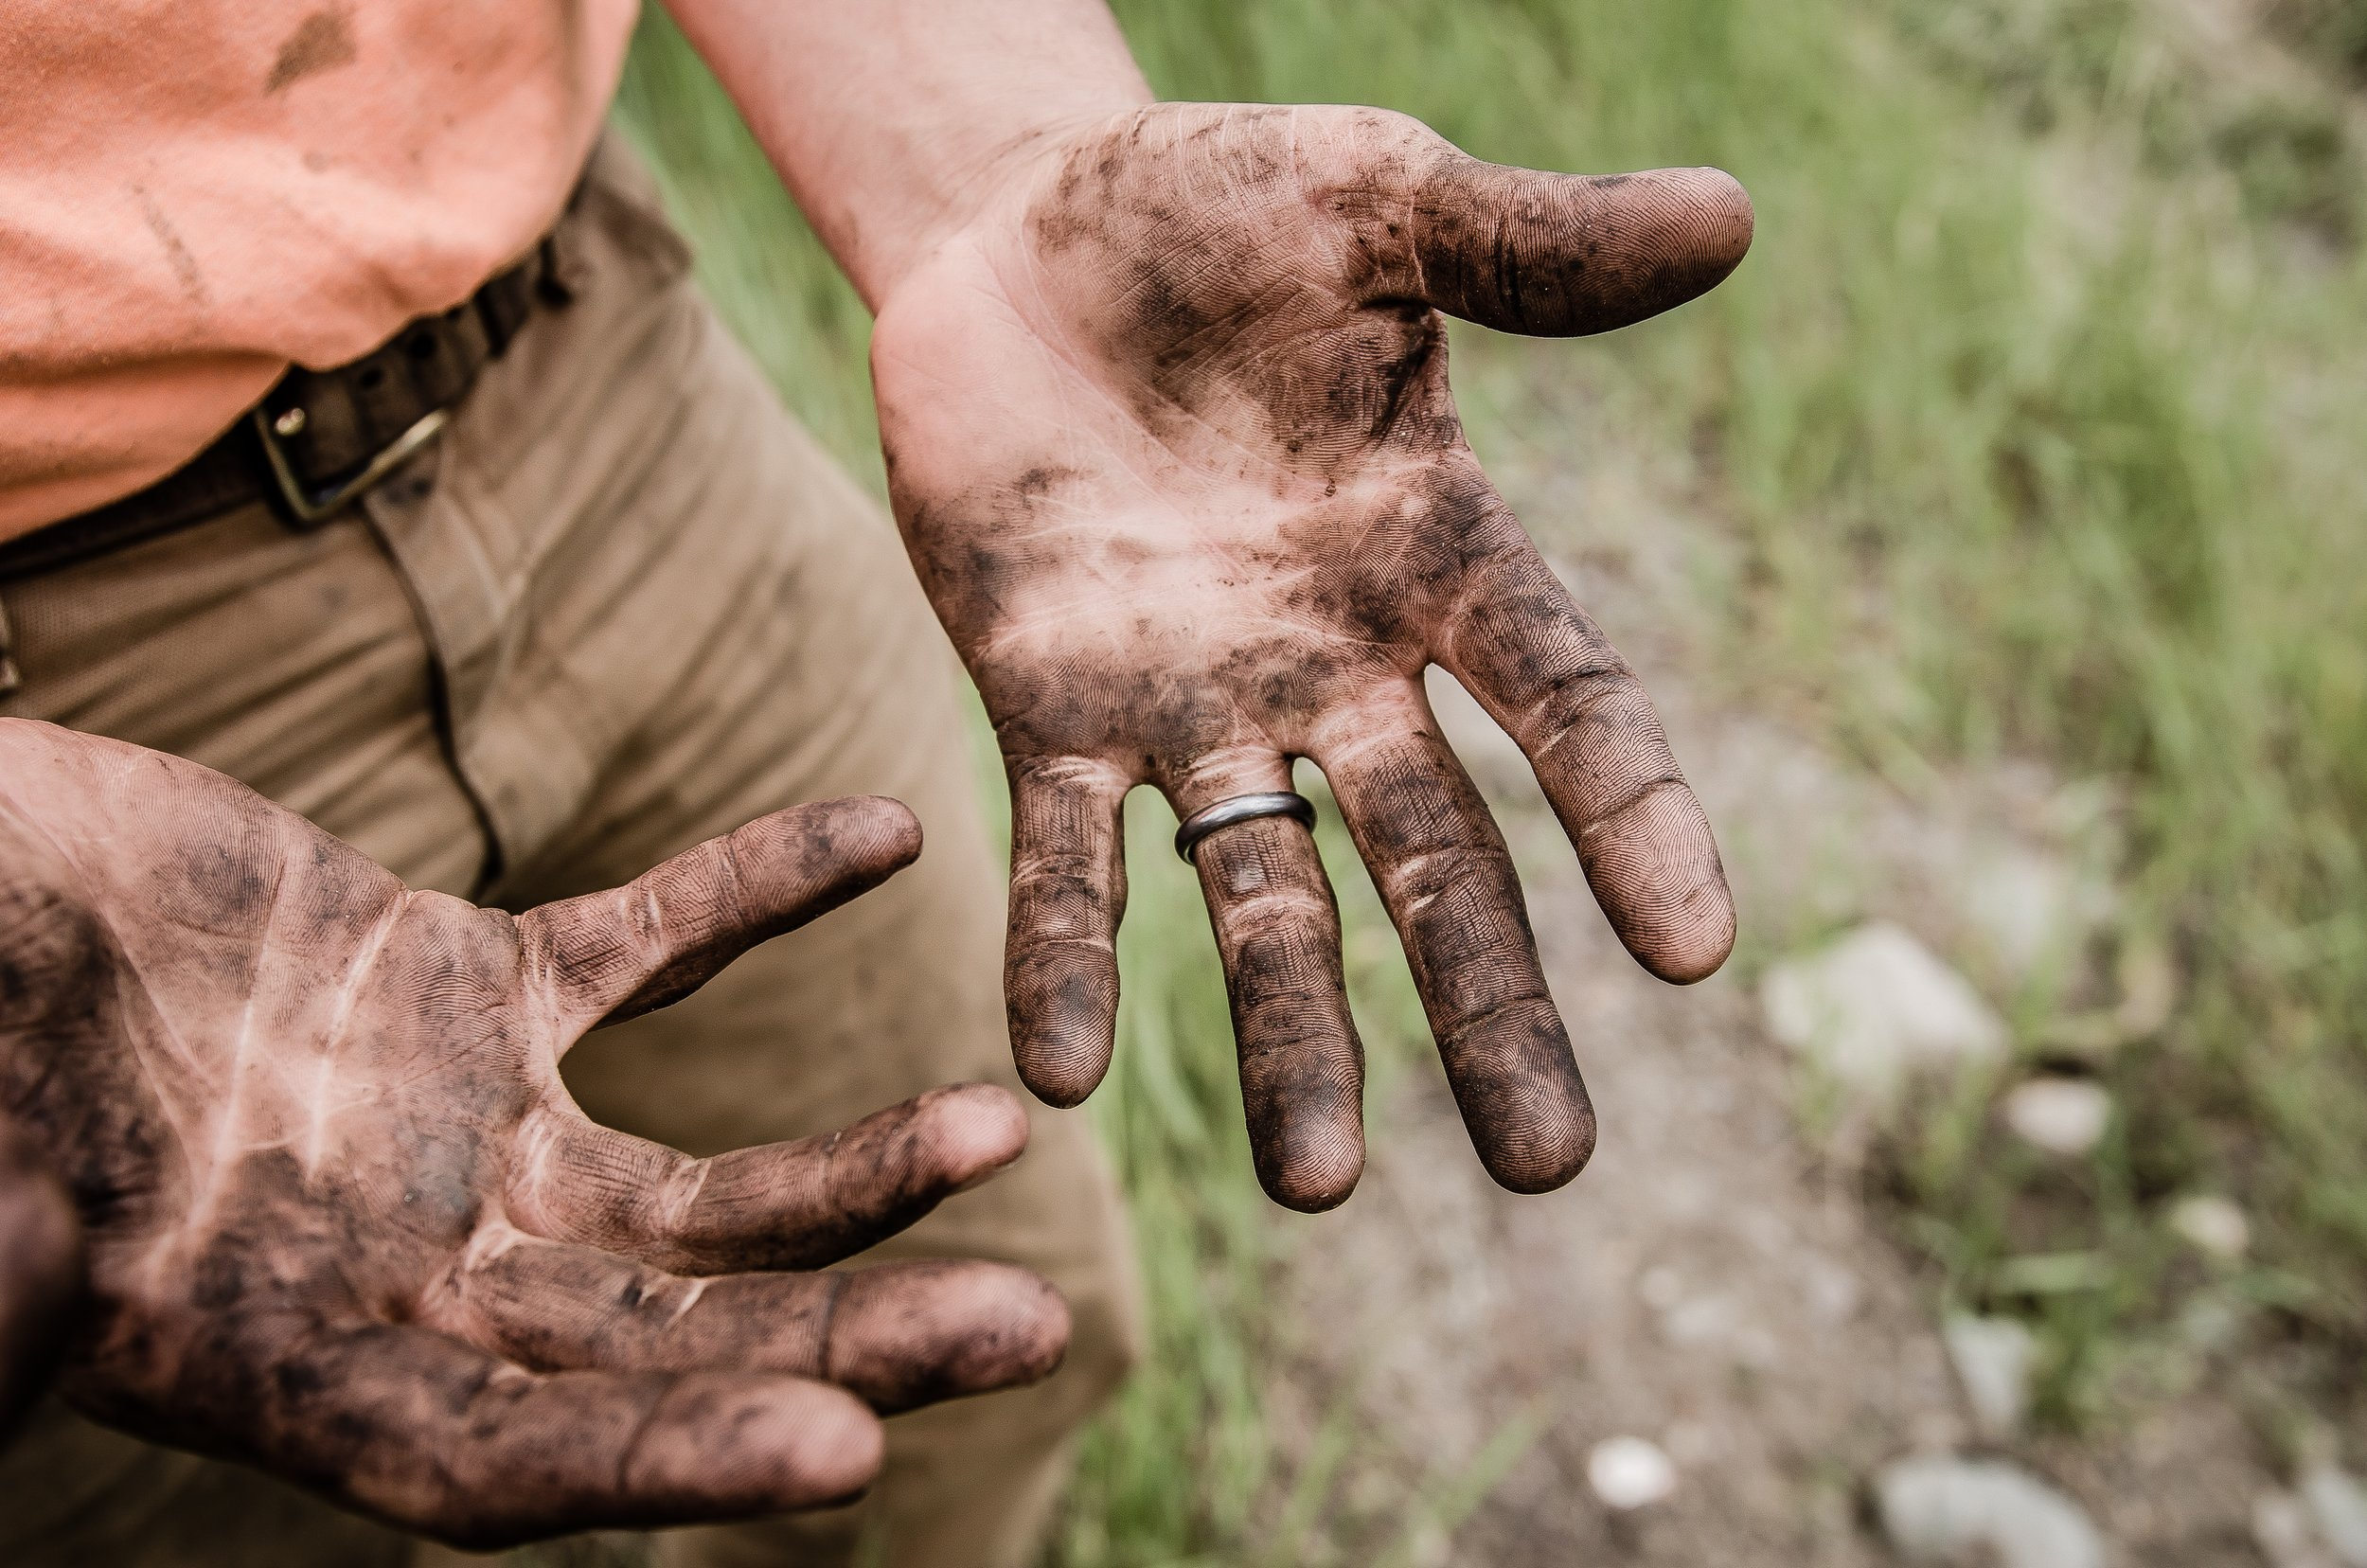 the-building-home-project-hands-dirty.jpg